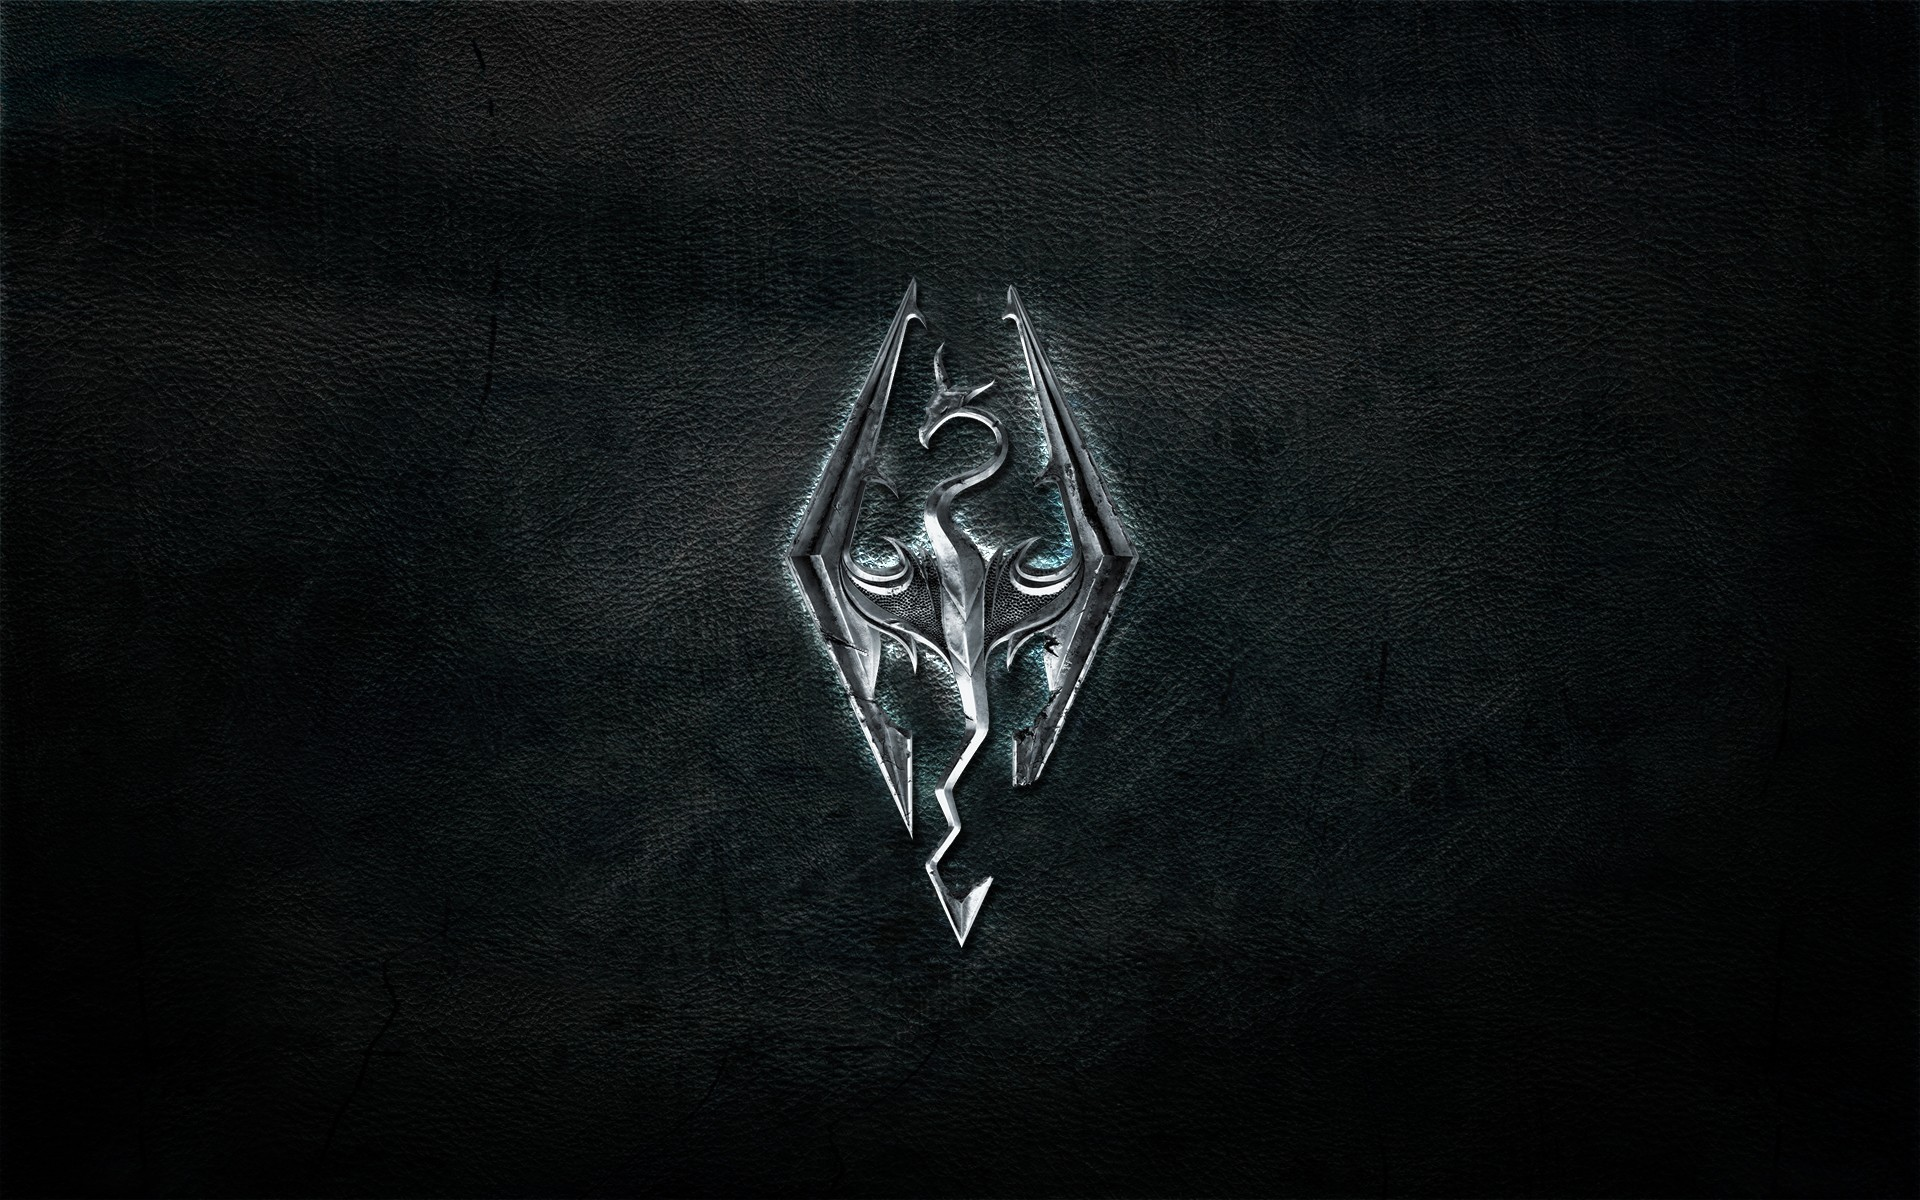 wallpaper the elder scrolls v skyrim logo on leather the elder